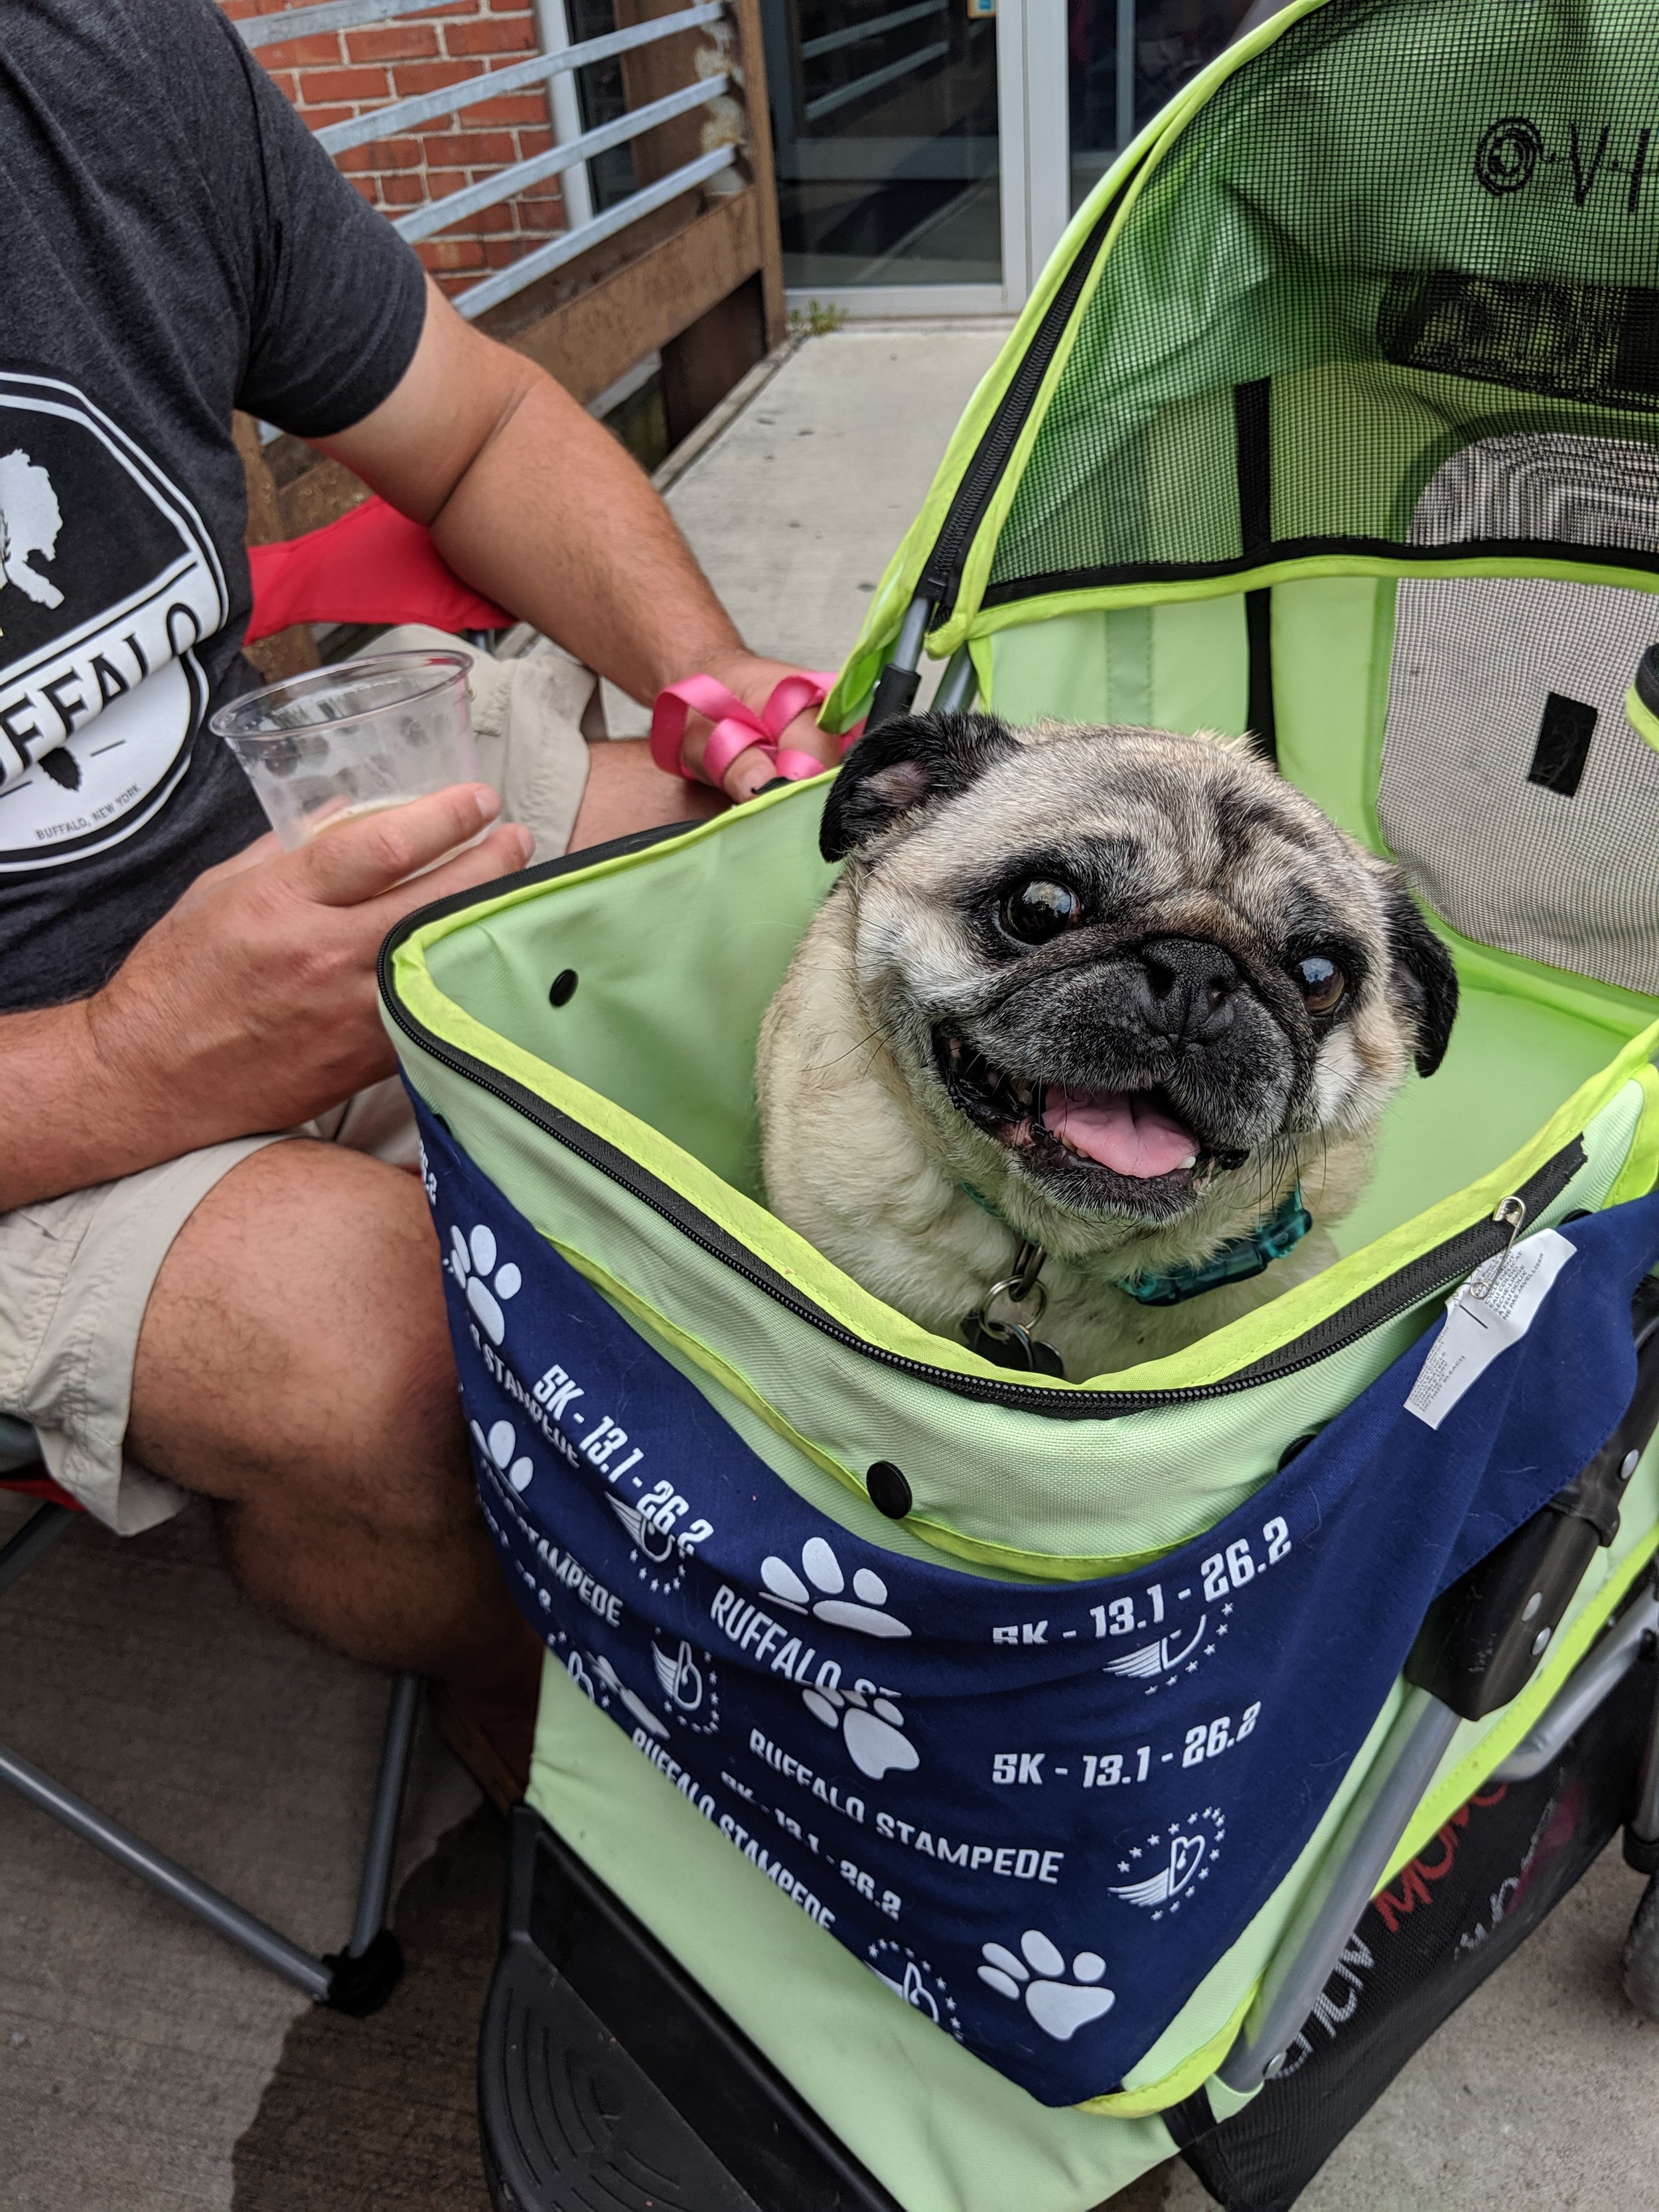 That pug in a stroller looks almost as happy to see me as I was to see her!